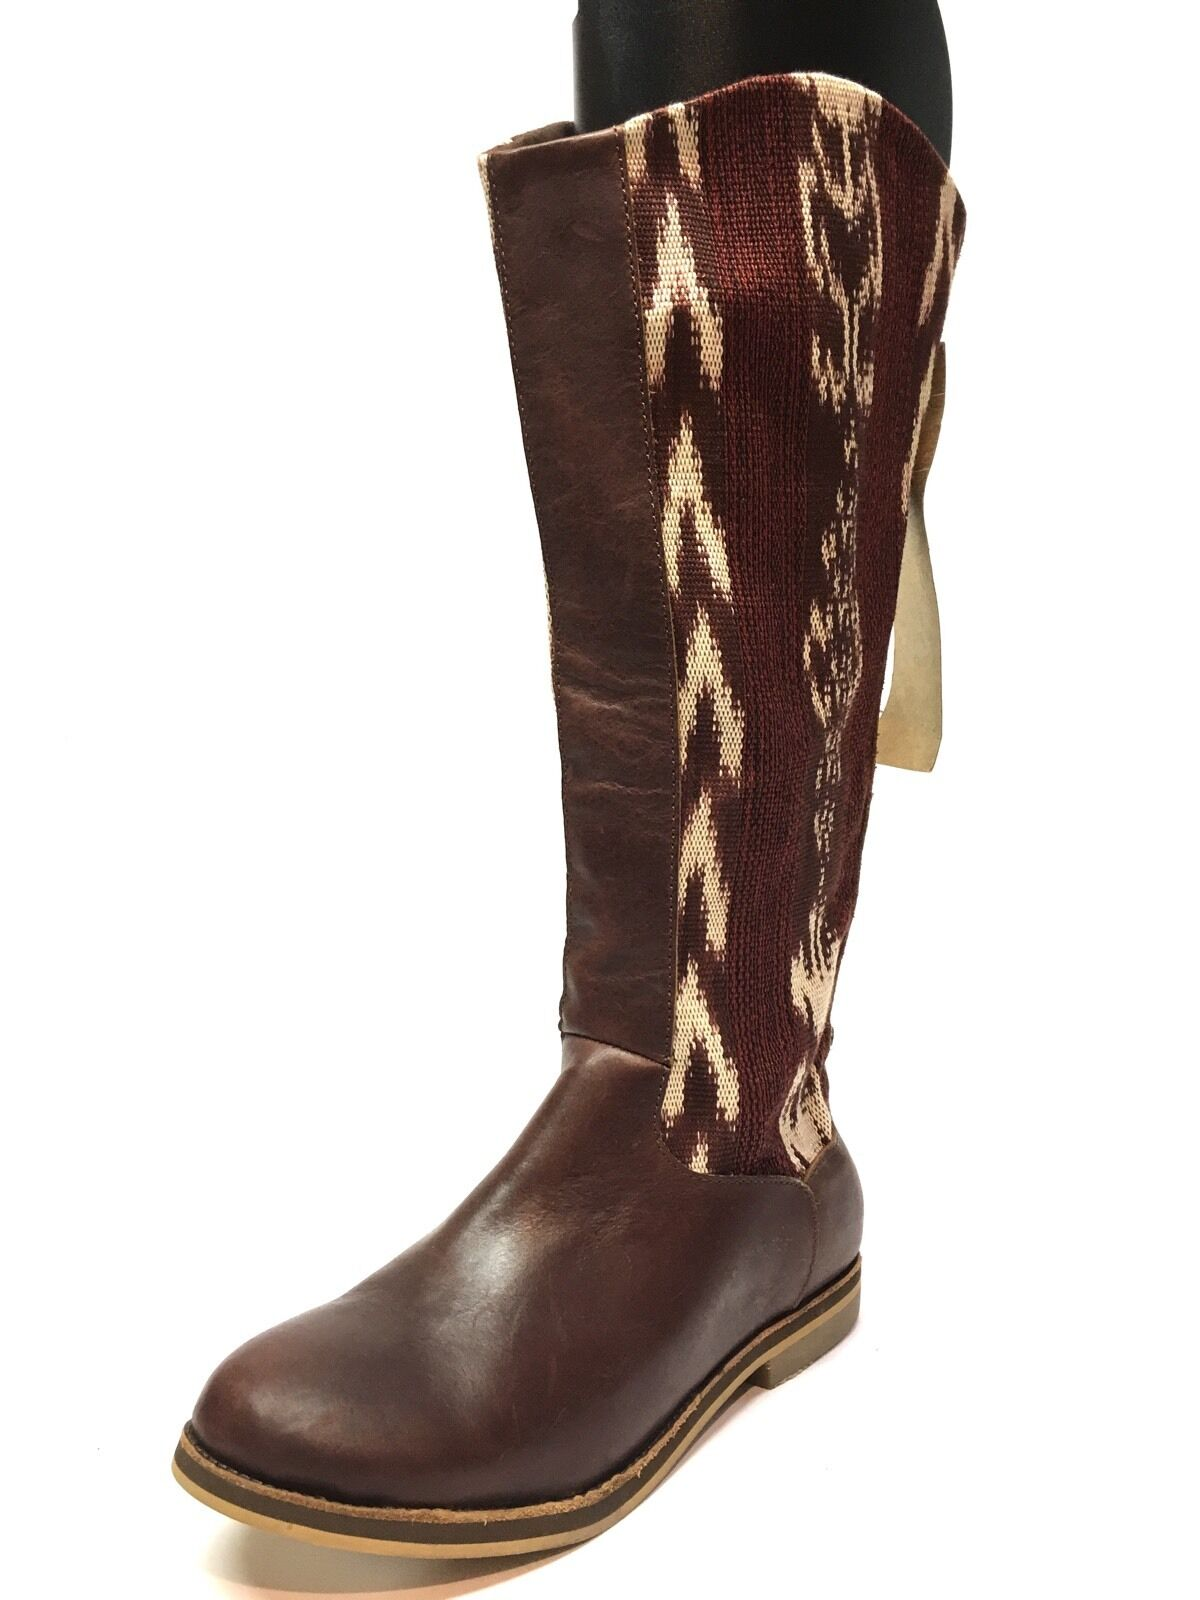 New Reef Santa Marta Embroidered Tribal Tall Riding Boots Women's Size 6 M